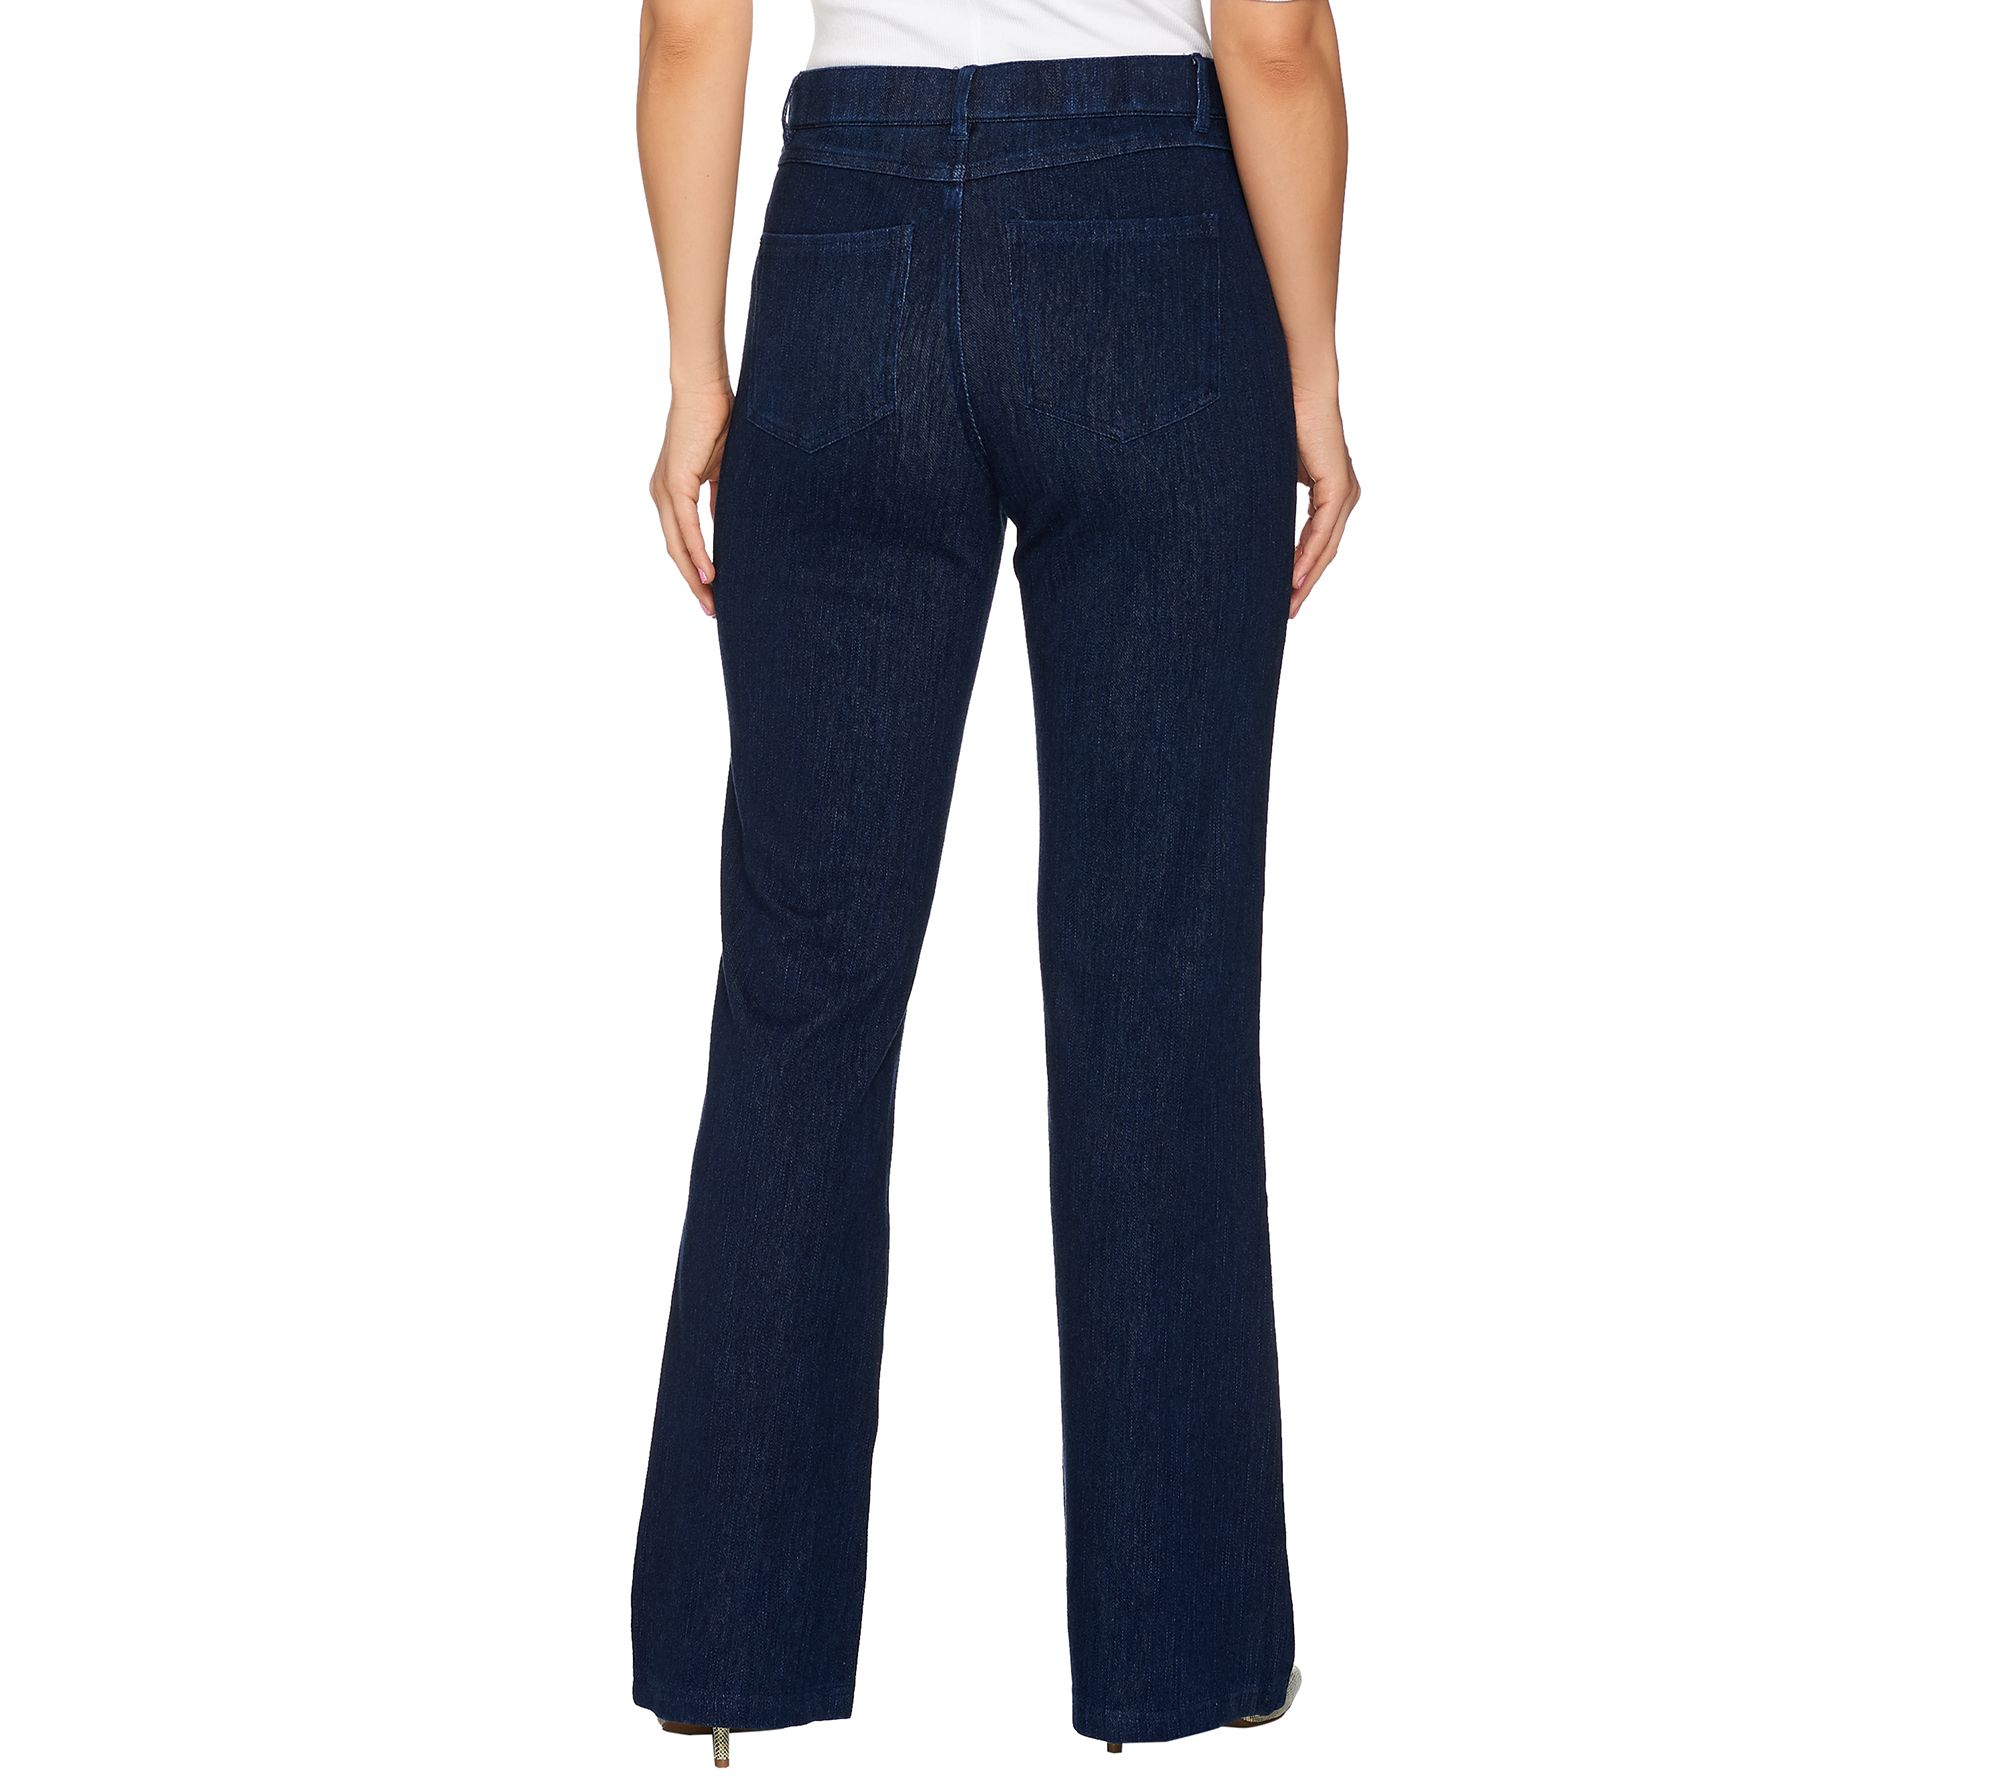 0aff59b5e40 Isaac Mizrahi Live! Regular Knit Denim Flared Jeans w  Patch Pockets - Page  1 — QVC.com